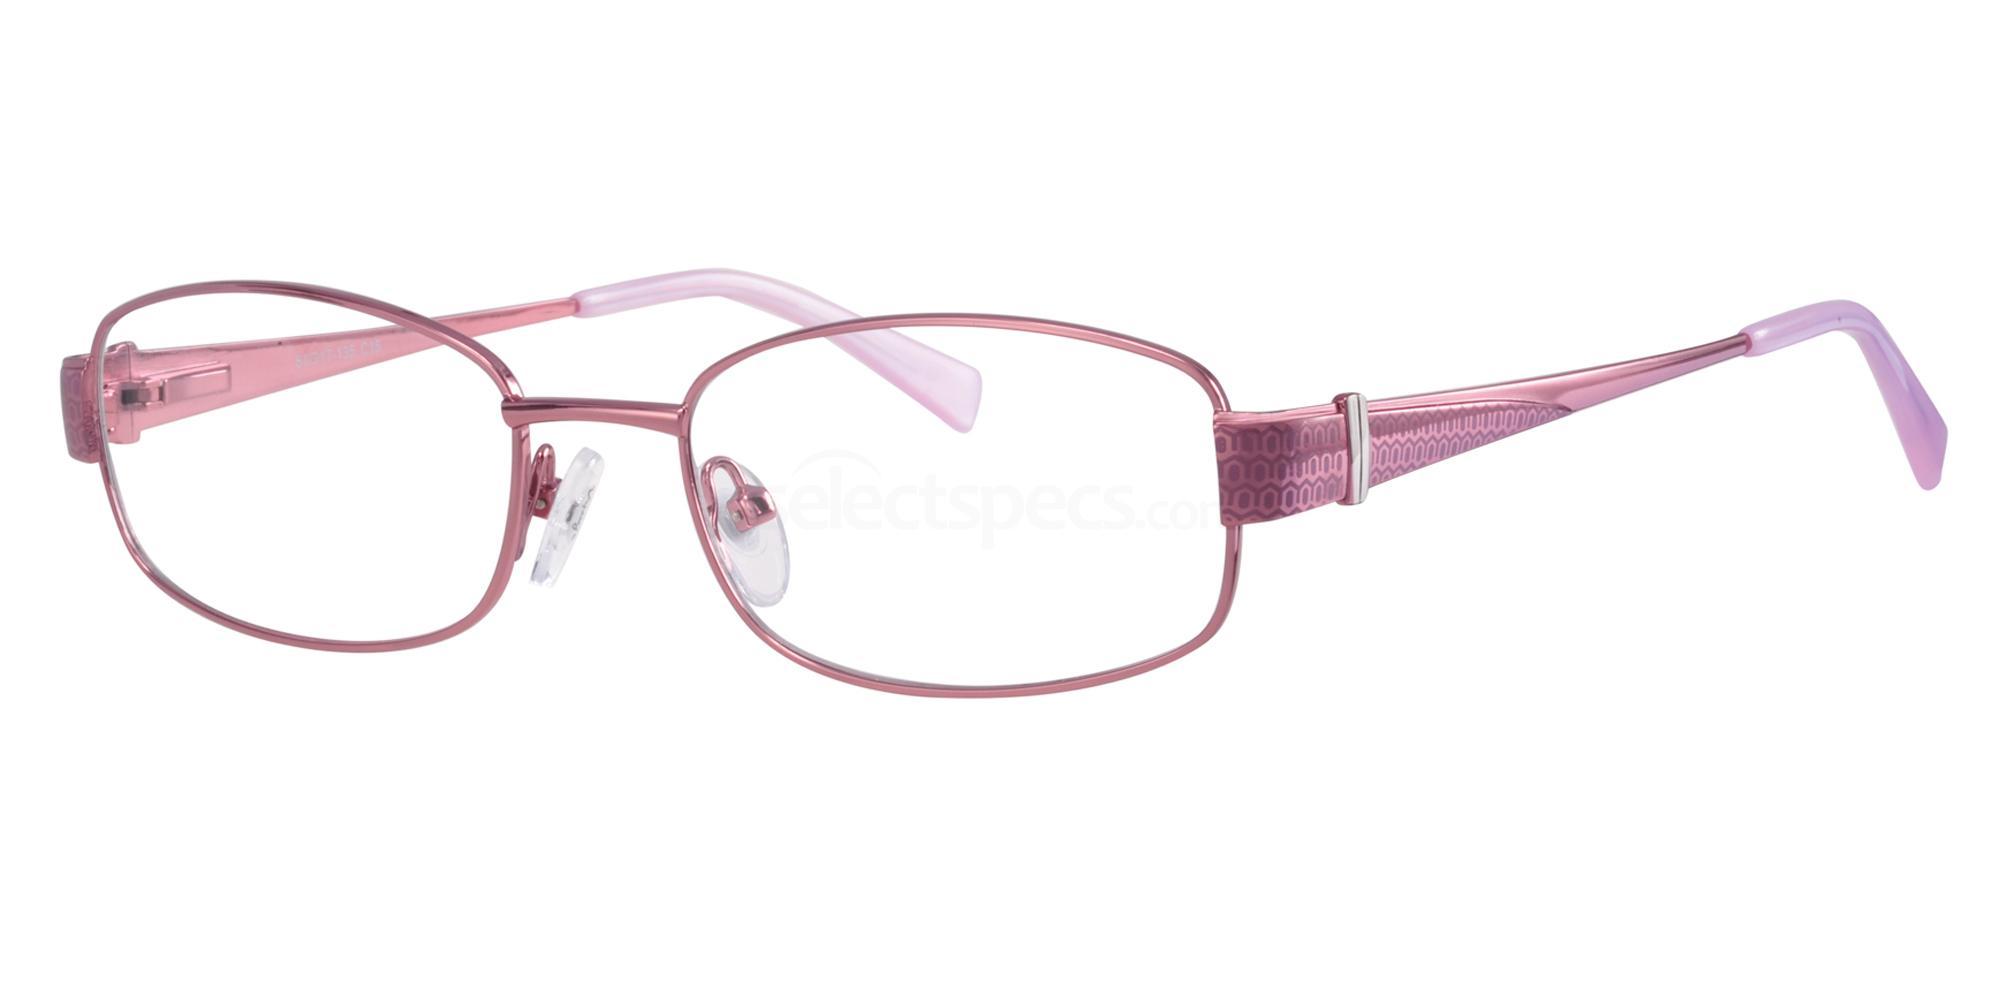 C15 431 Glasses, Visage Elite